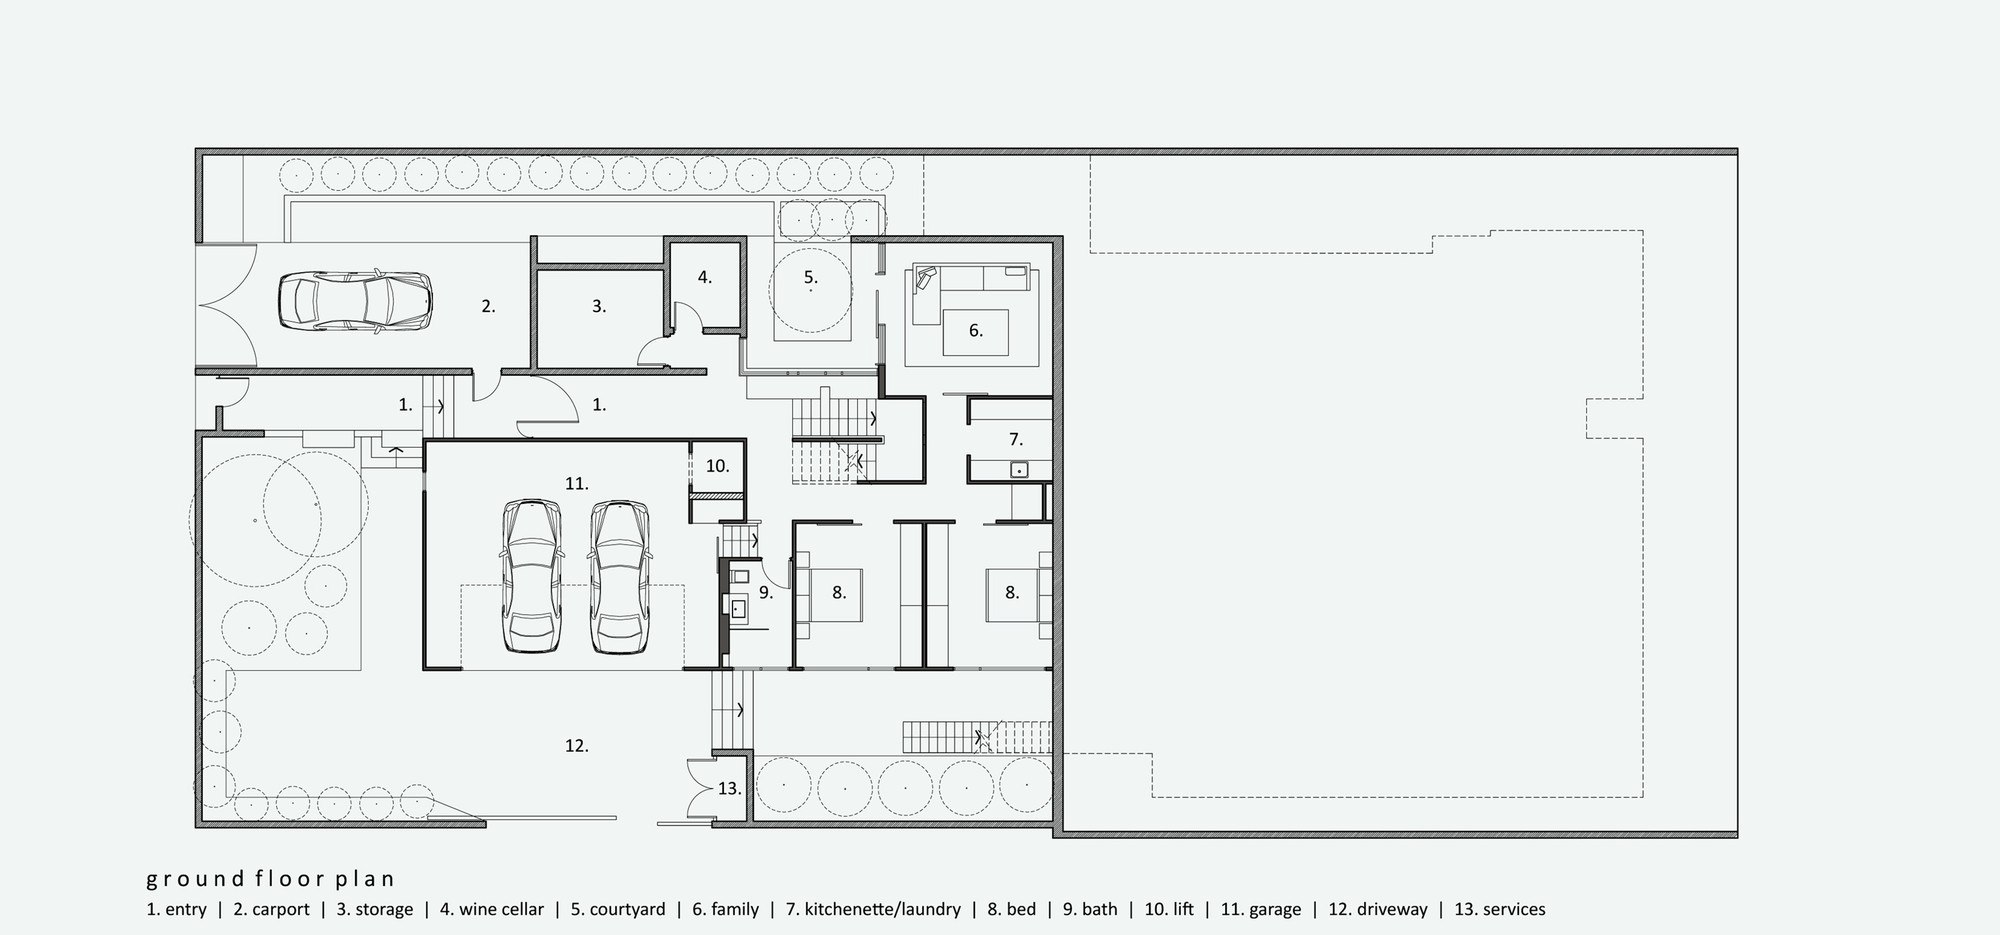 f1?1403237491 gallery of boarding house shaun lockyer architects 16,Boarding House Plans